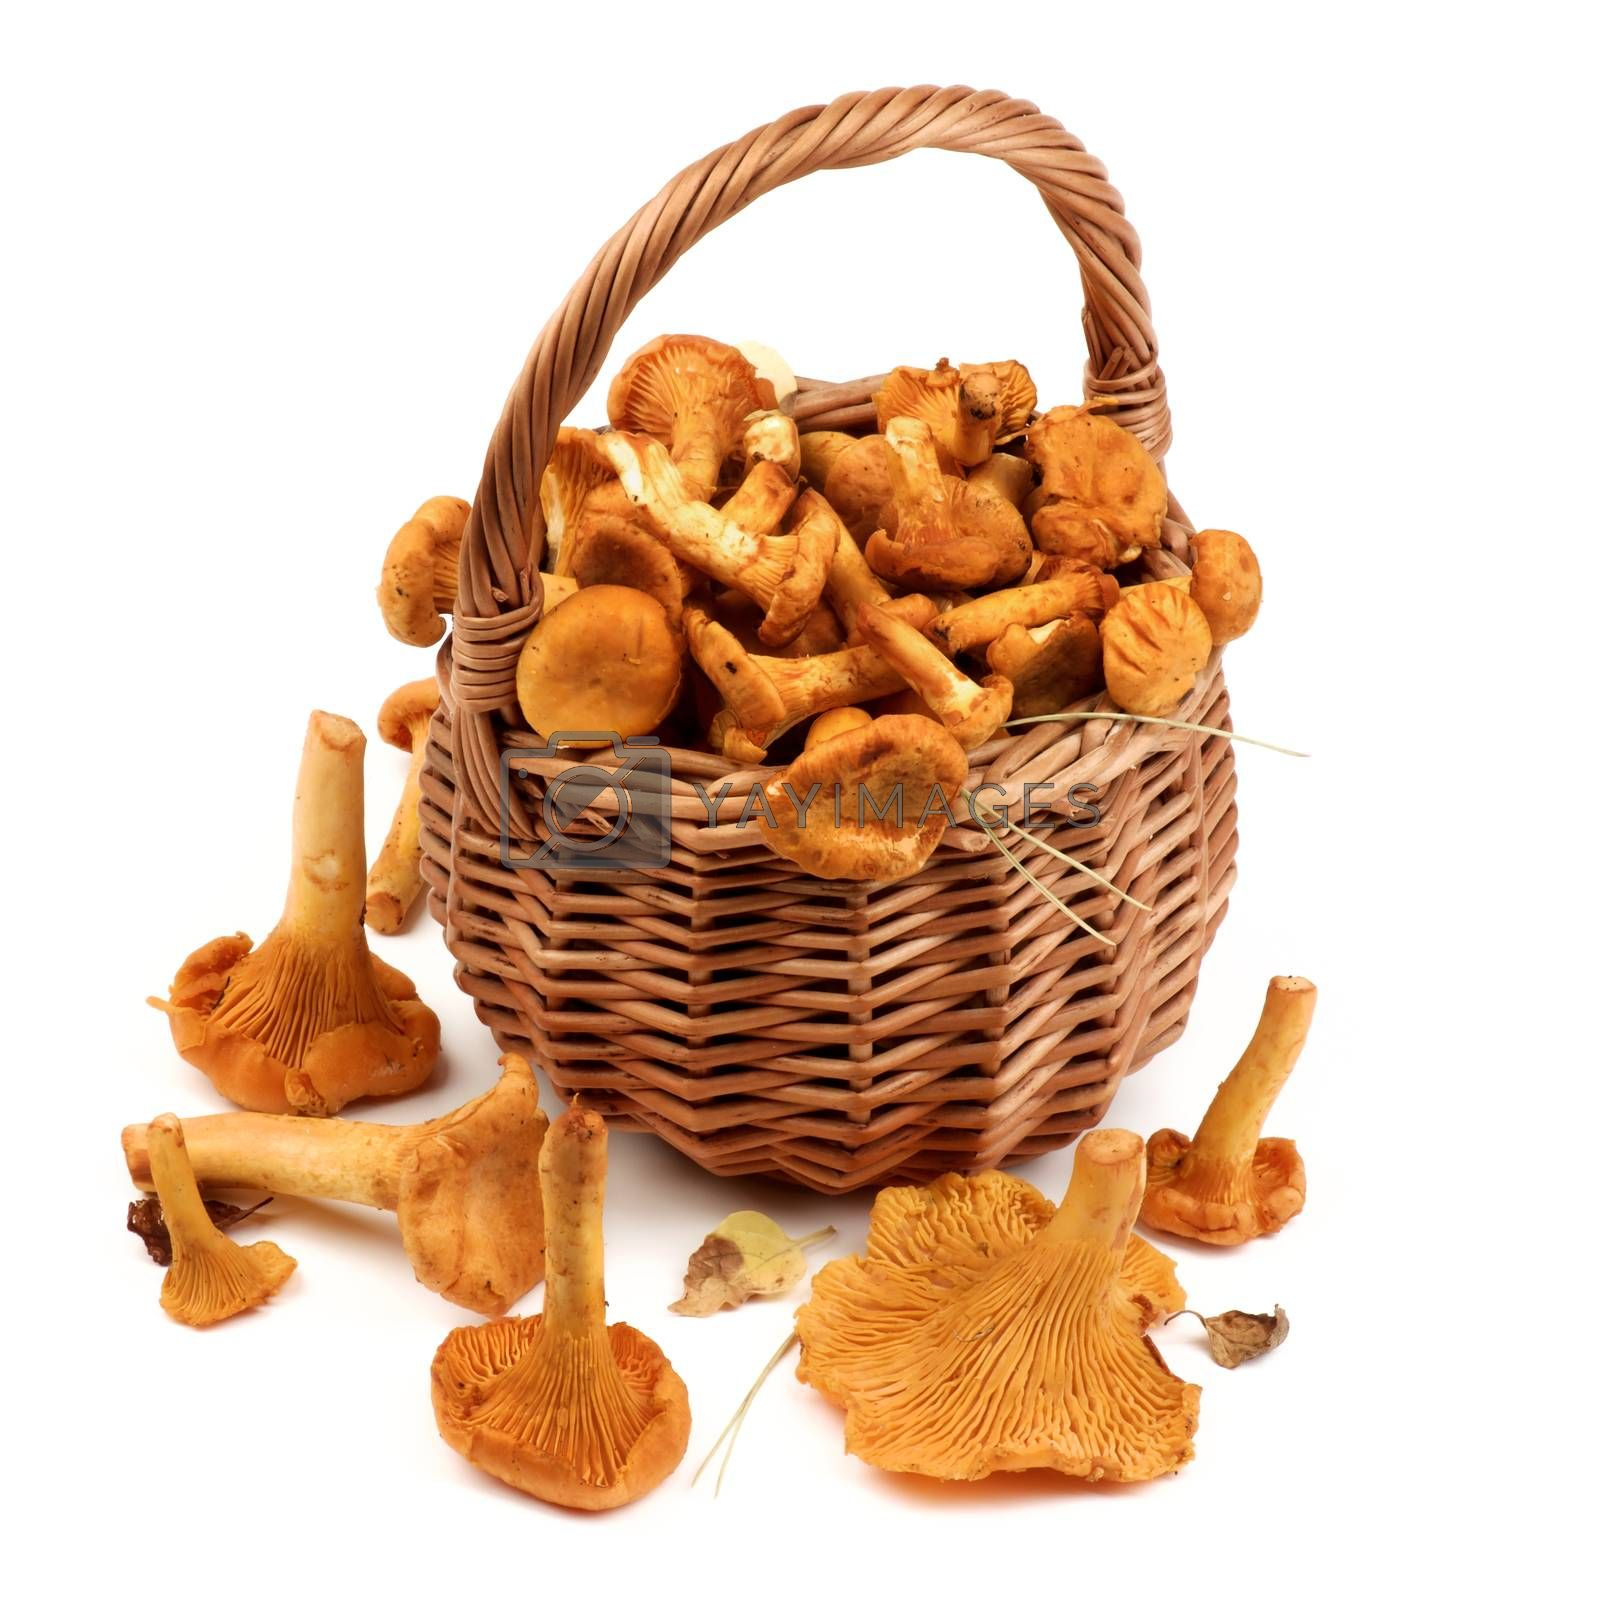 Raw Chanterelles Mushrooms by zhekos